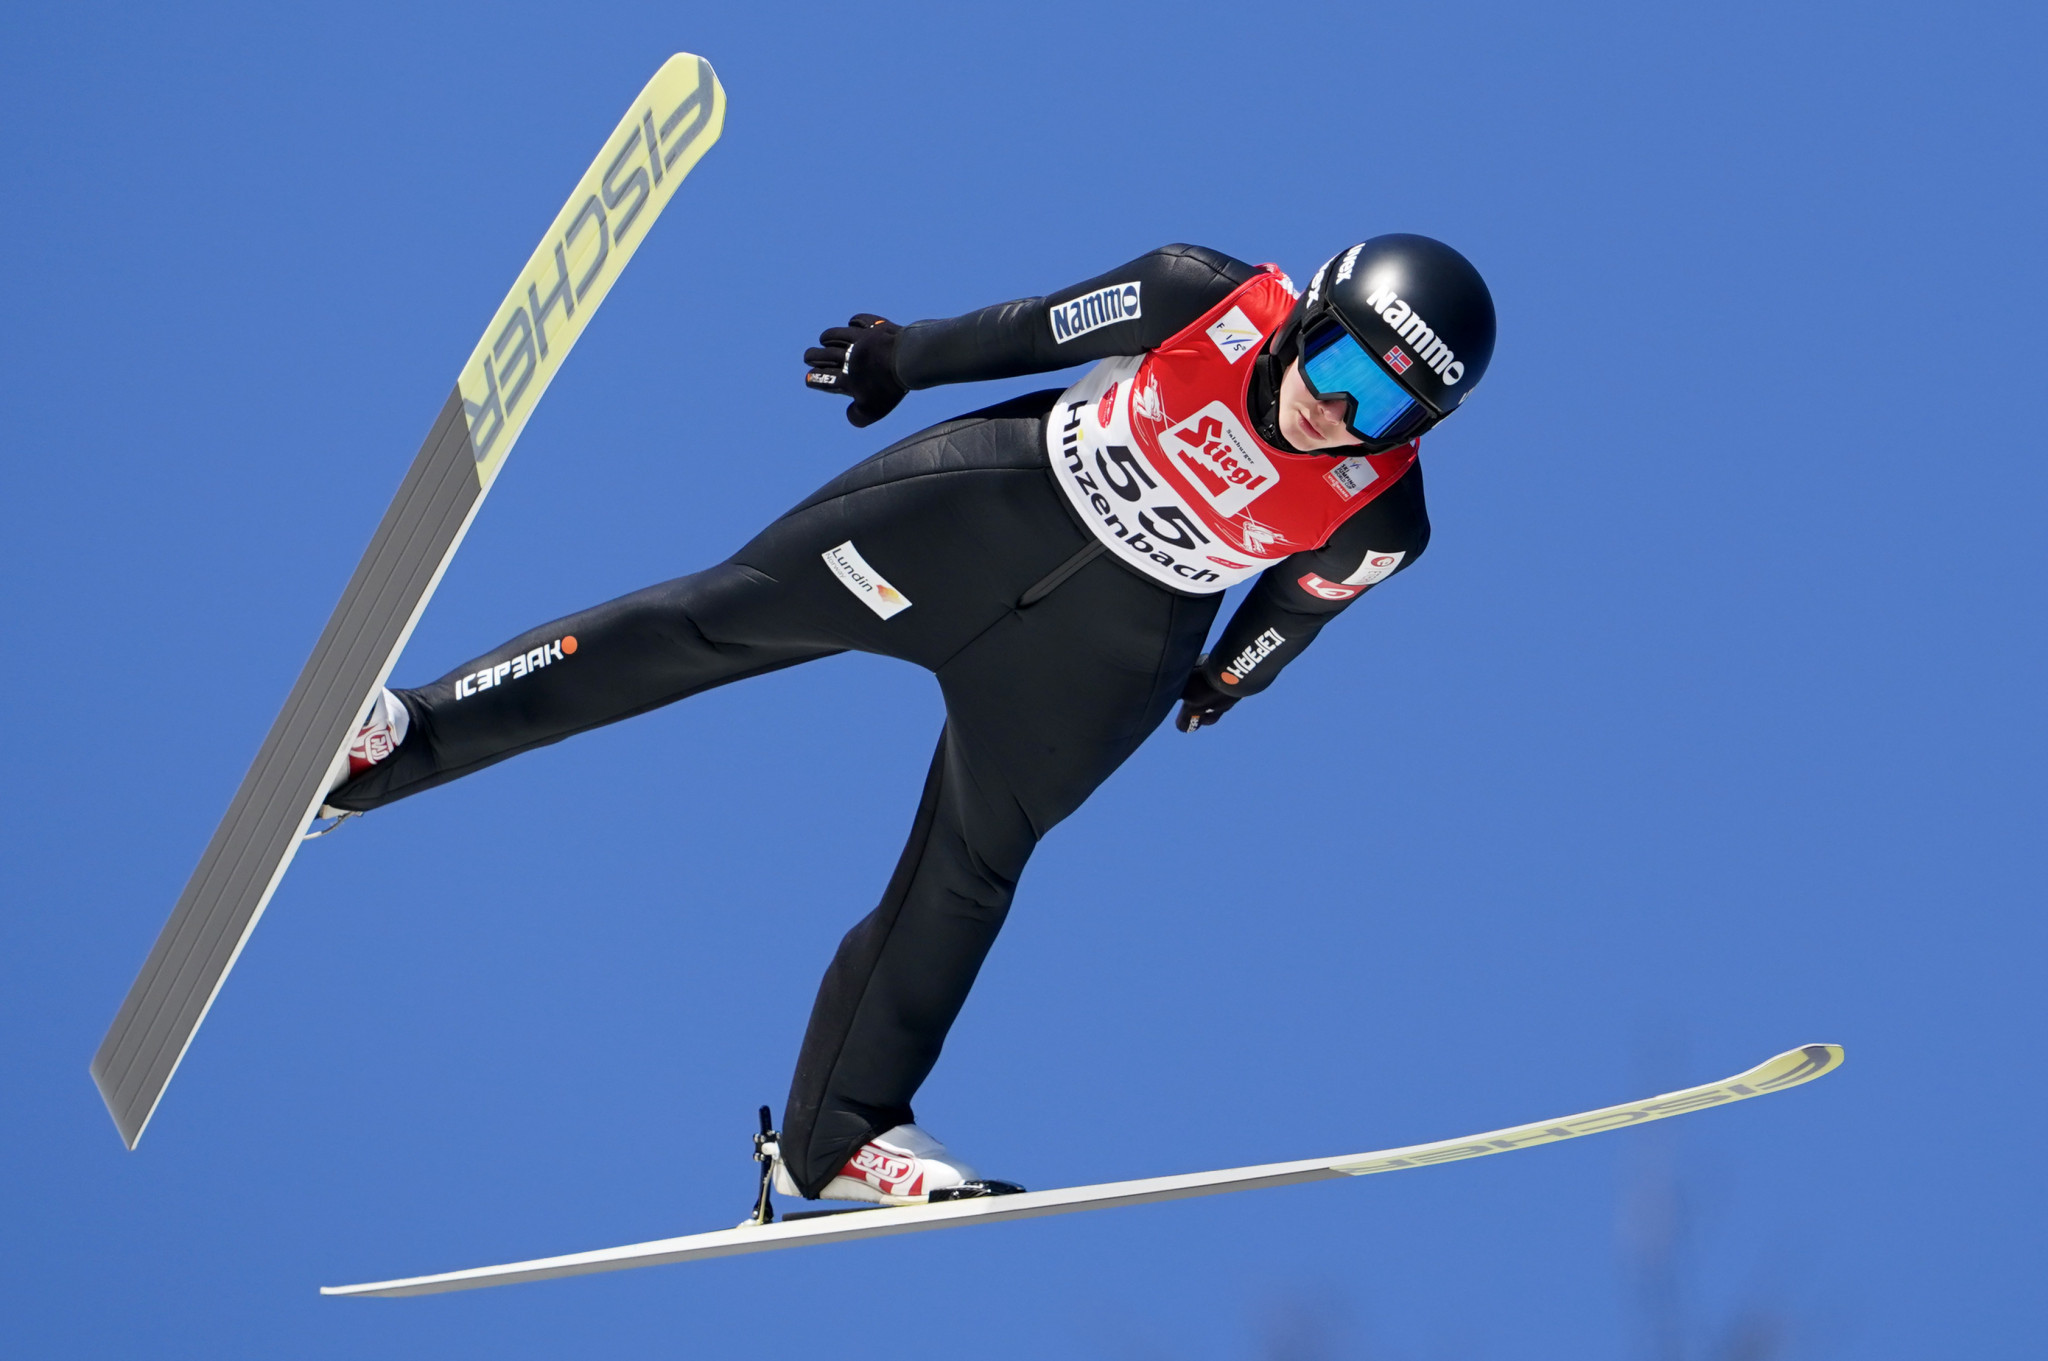 Silje Opseth topped qualifying at the FIS Ski Jumping World Cup in Ljubno ©Getty Images